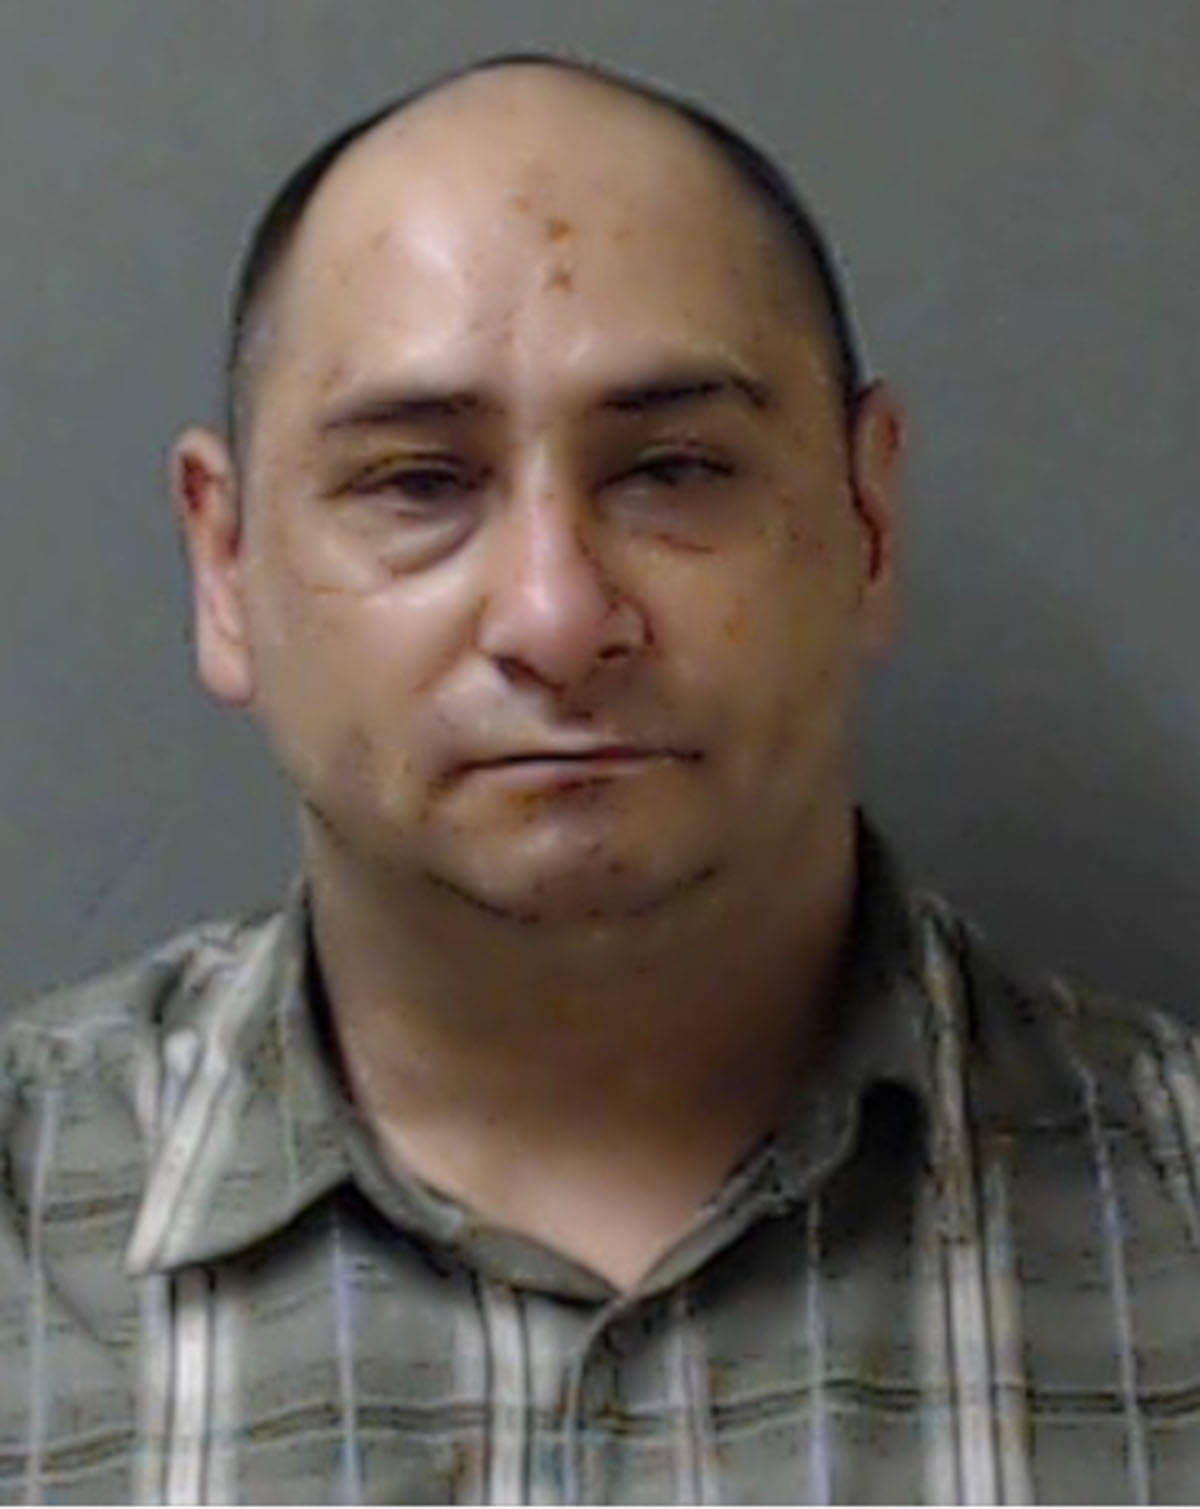 """Name: DOUGLAS, Michel Age: 43 Height: 5'11"""" ft Weight: 150 lbs Hair: Black Eyes: Brown Wanted: Driving while Prohibited Warrant in effect: March 8, 2021 Parole Jurisdiction: Chilliwack, BC"""